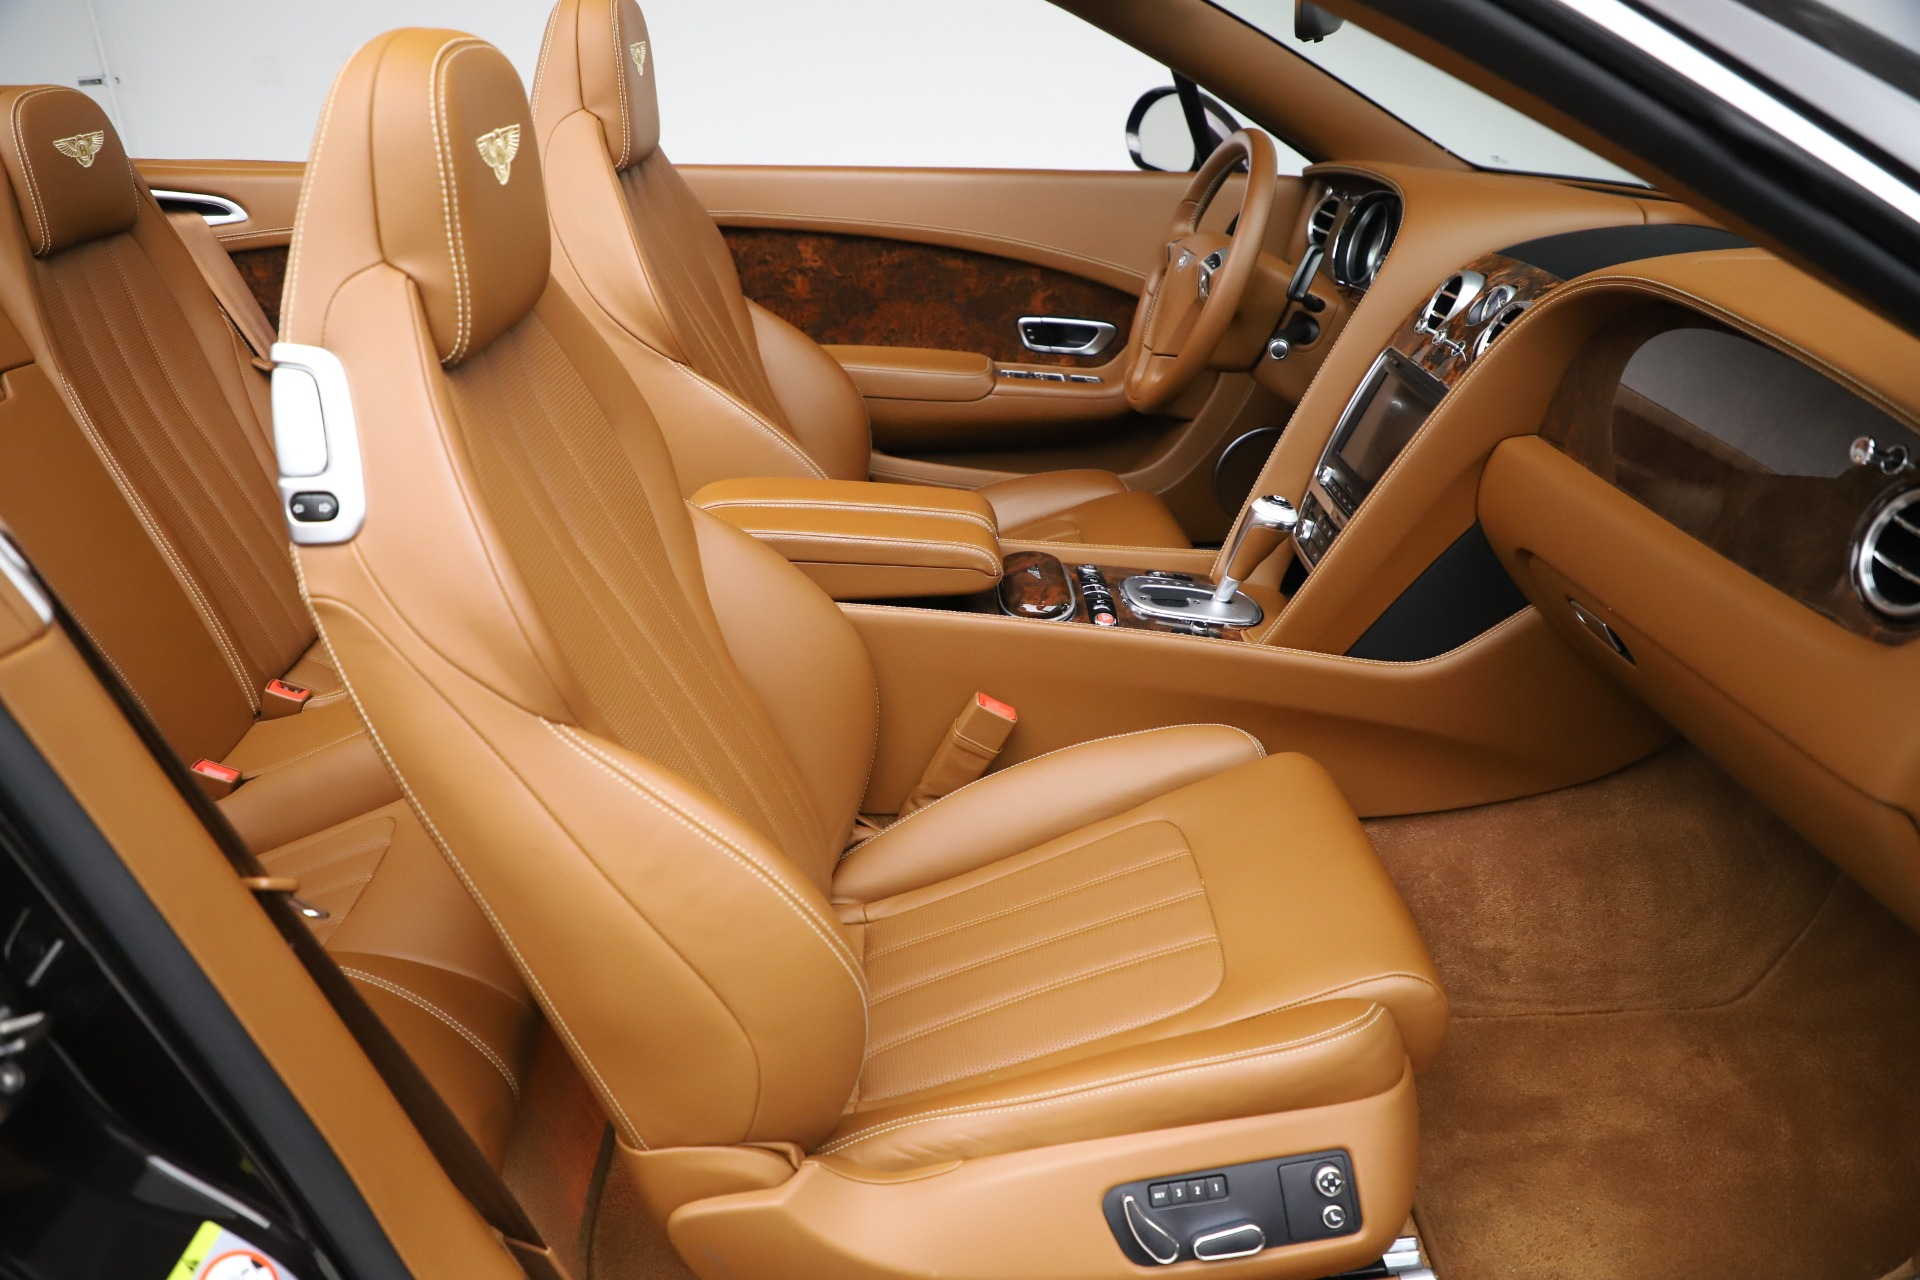 Used 2013 Bentley Continental GT W12 For Sale In Westport, CT 3505_p32